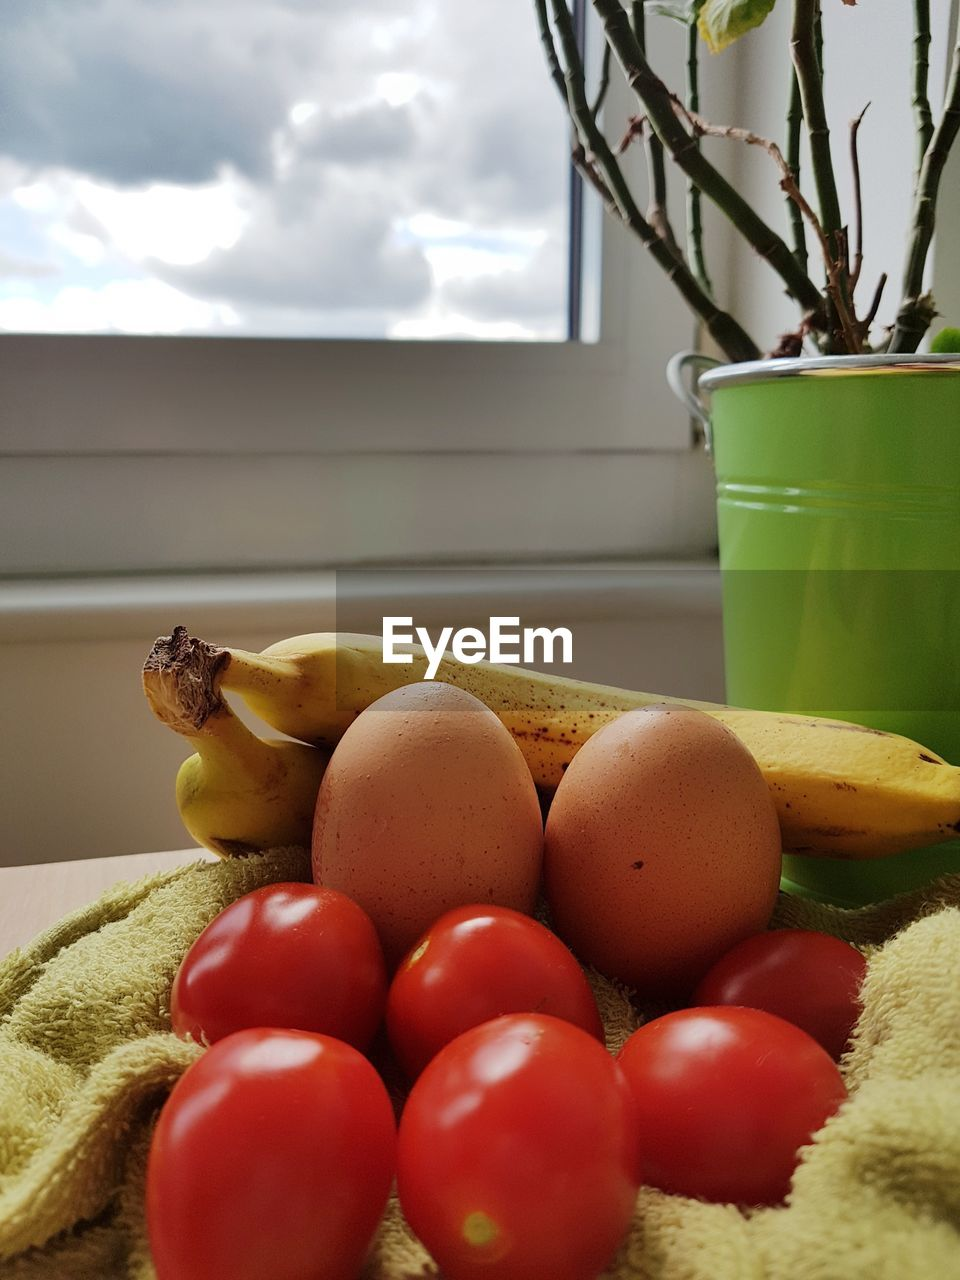 food, food and drink, vegetable, freshness, healthy eating, wellbeing, still life, indoors, tomato, no people, fruit, nature, close-up, container, egg, day, table, plant, raw food, red, snack